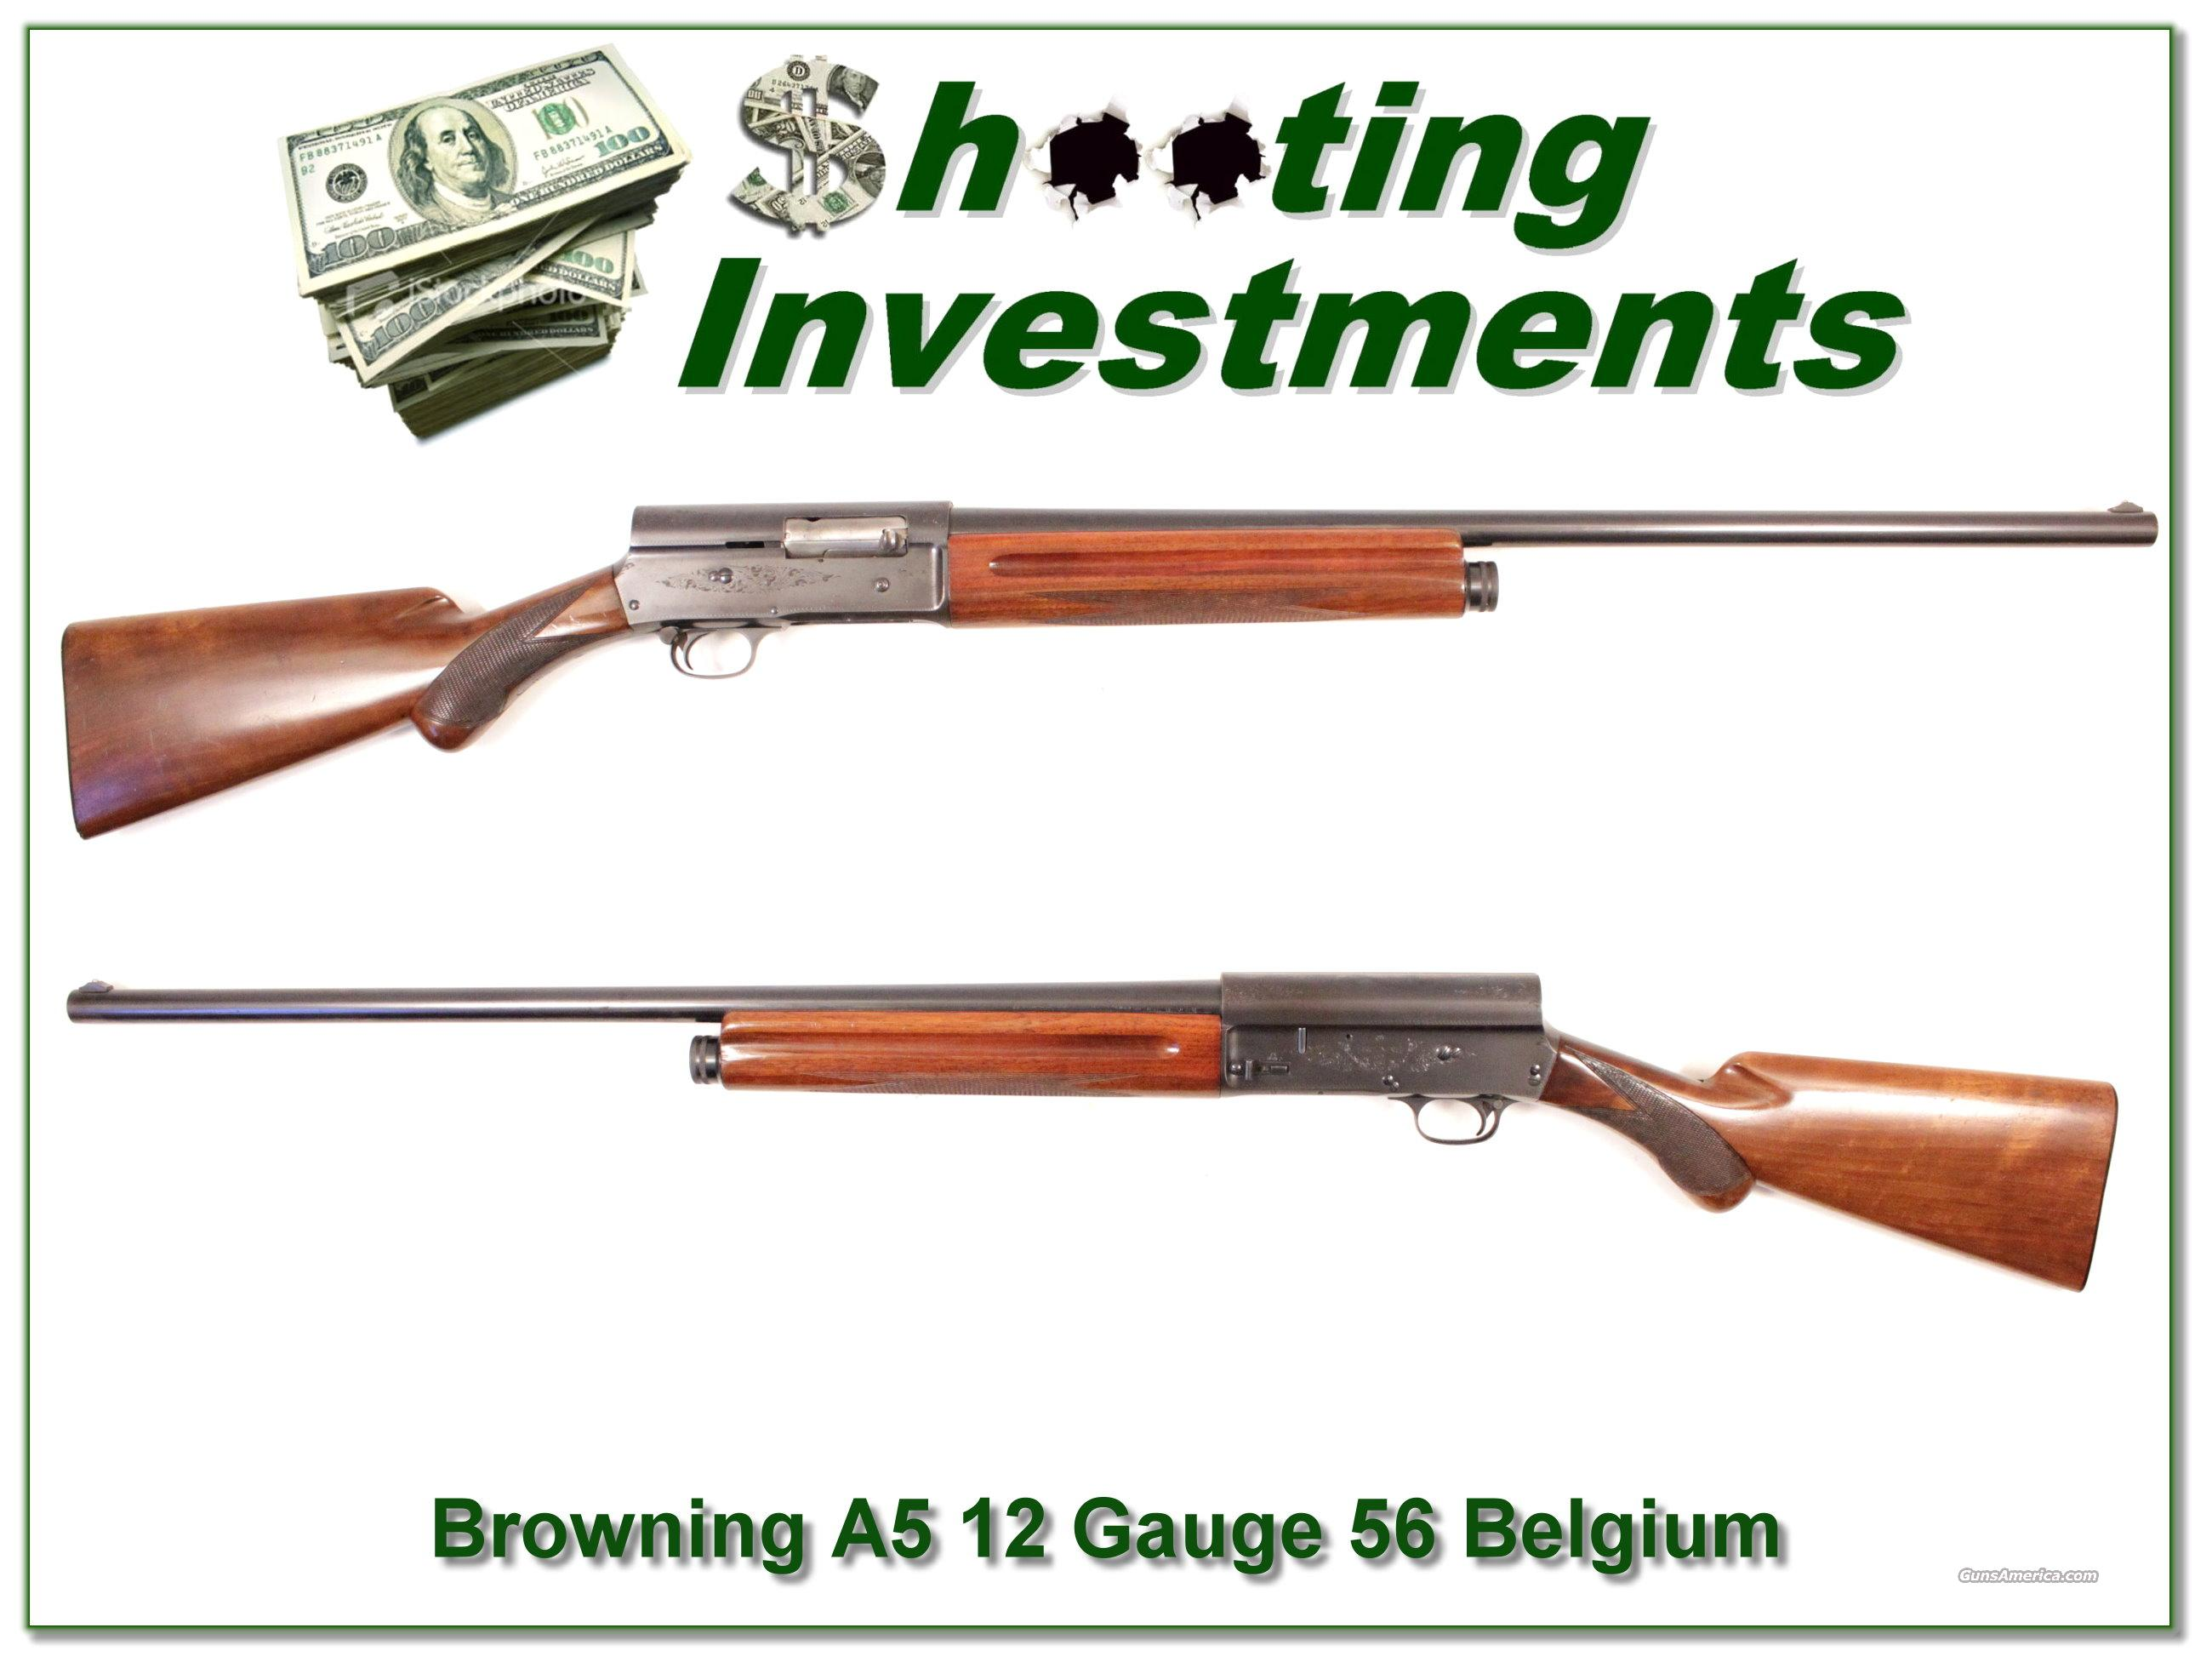 Browning A5 12 Gauge 56 Belgium 28in Modified  Guns > Shotguns > Browning Shotguns > Autoloaders > Hunting